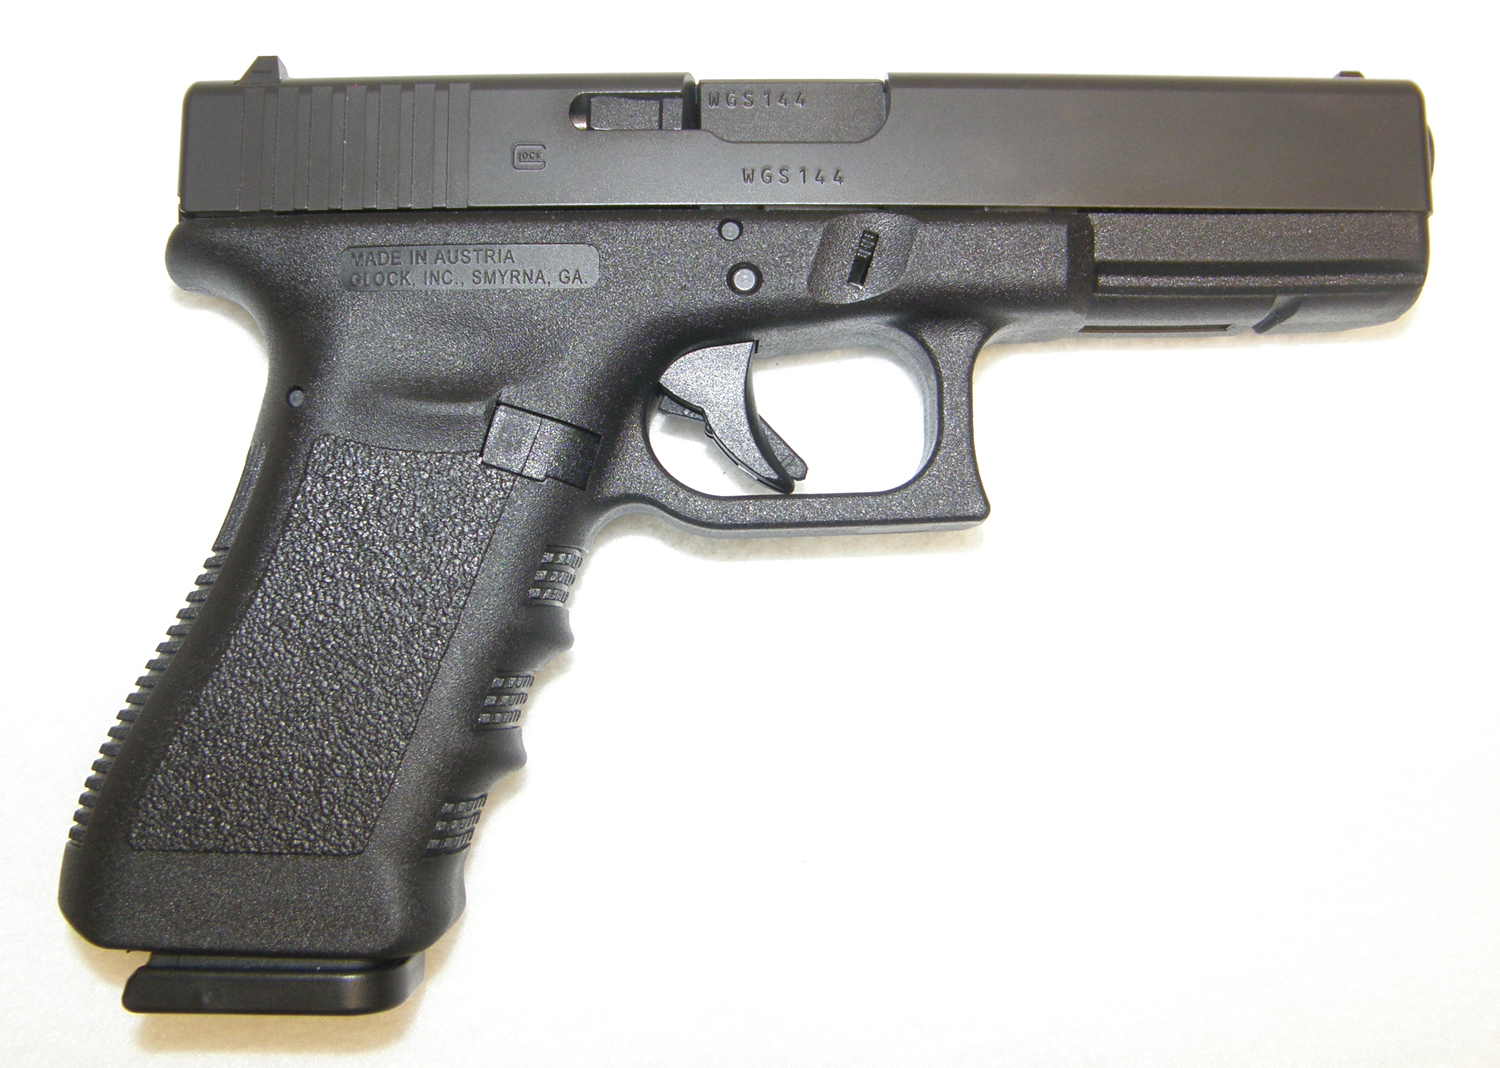 Glock 17 Gen 3 9mm Full Size Pistol (New) | Rare ...